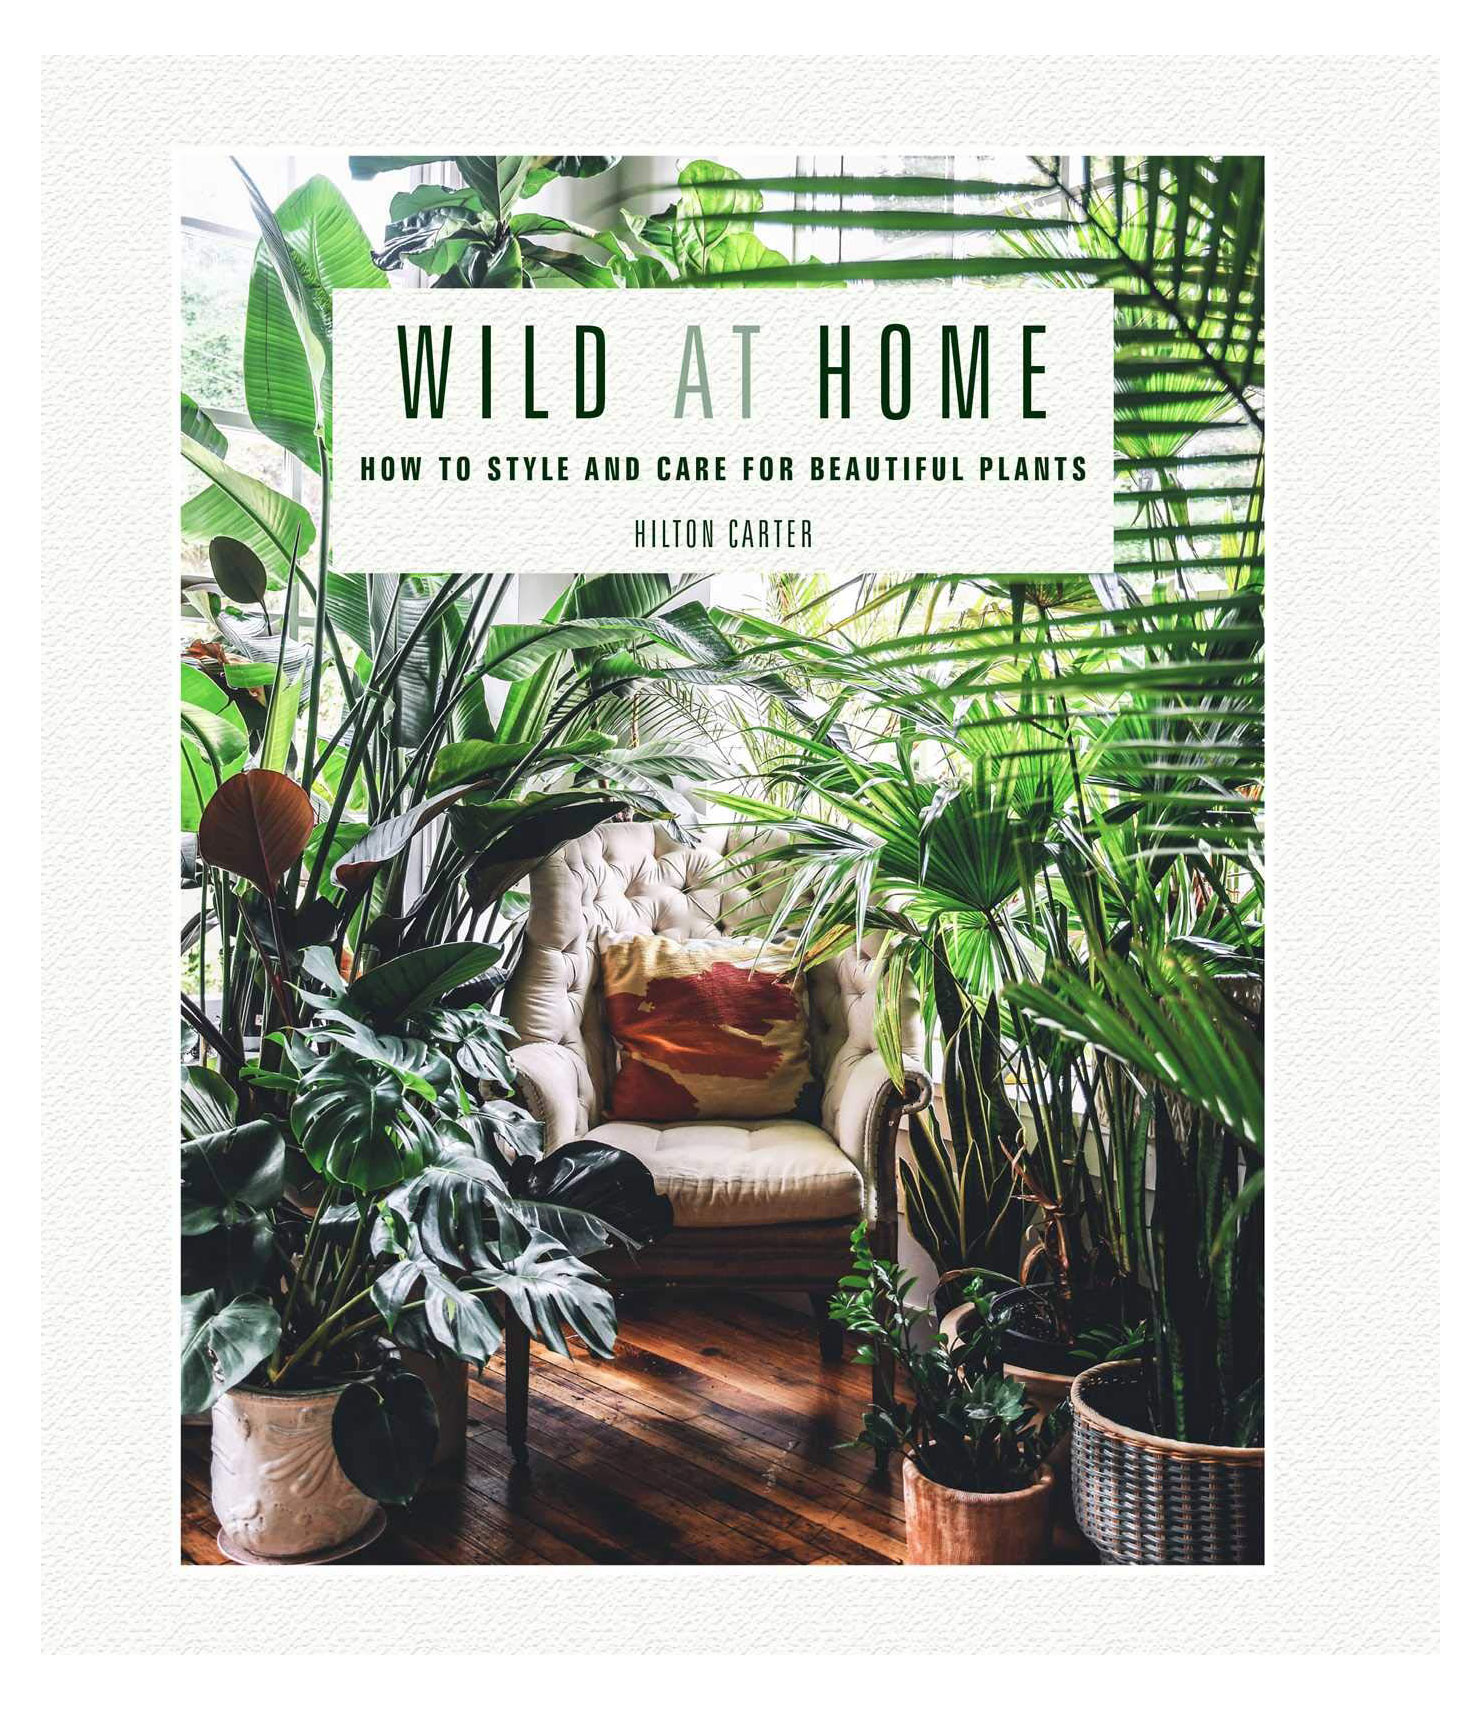 Gifts for plant lovers - Wild at Home: How to Style and Care for Beautiful Plants by Hilton Carter